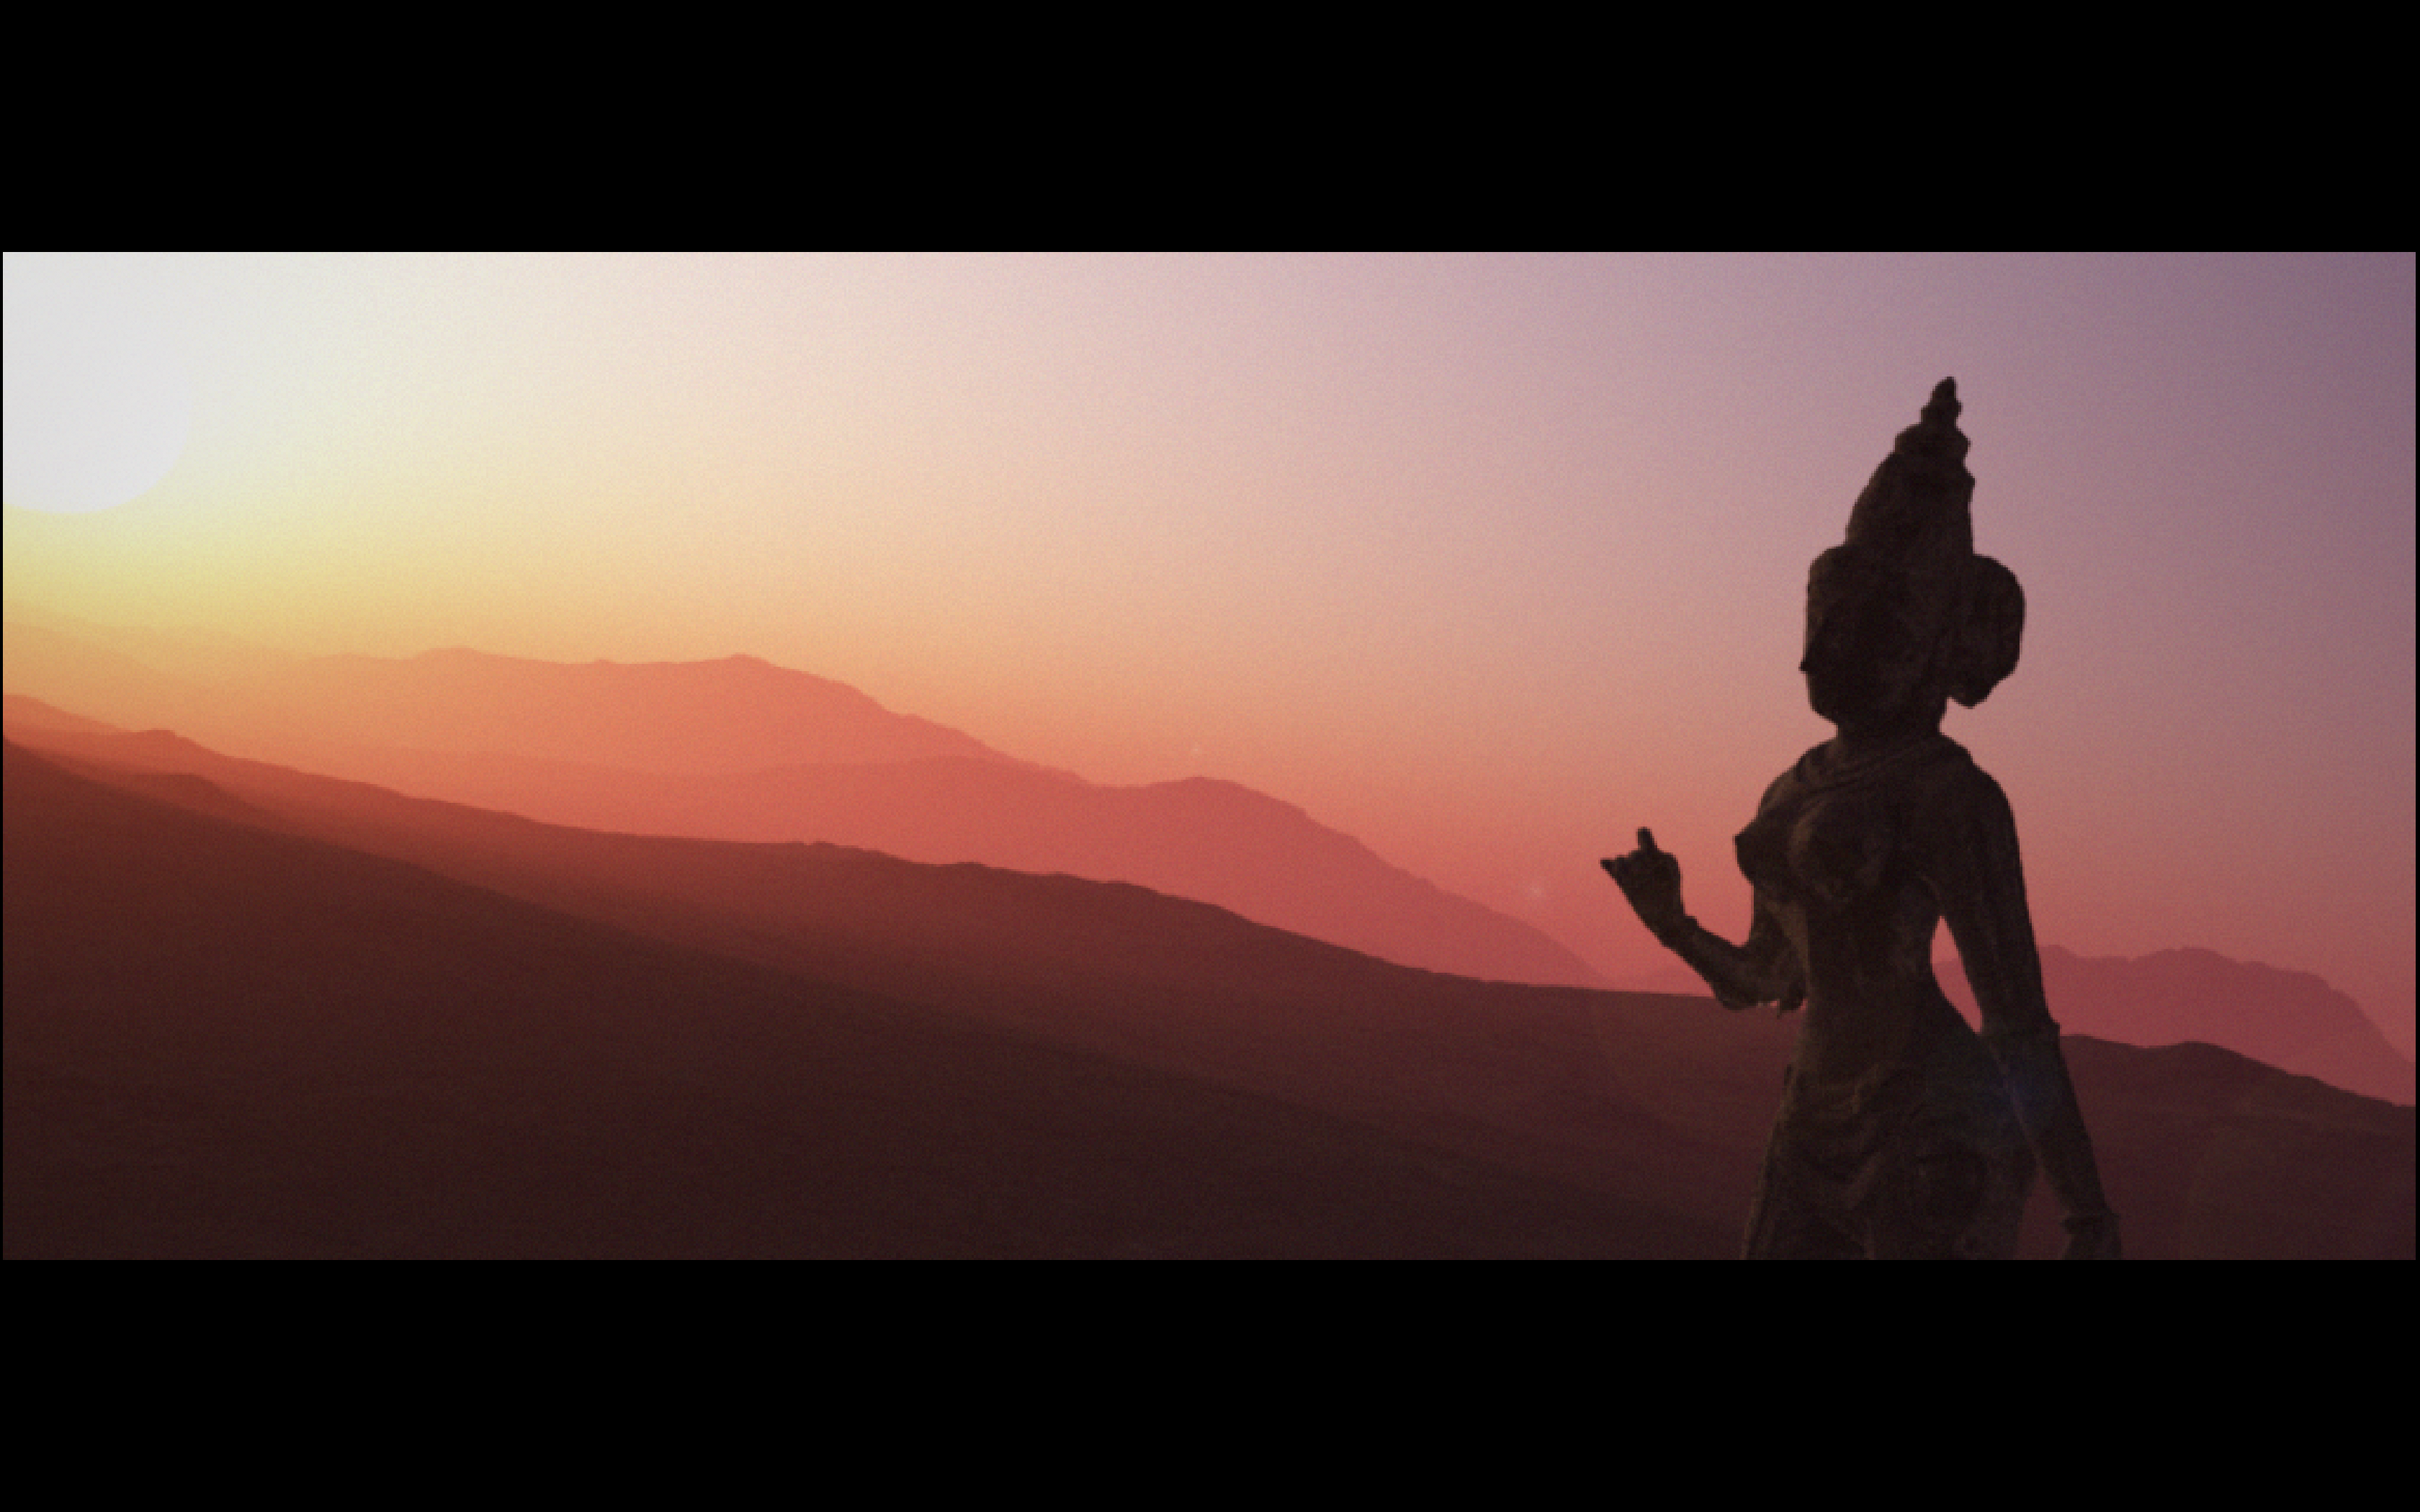 Goddess Parvati Sunset wip